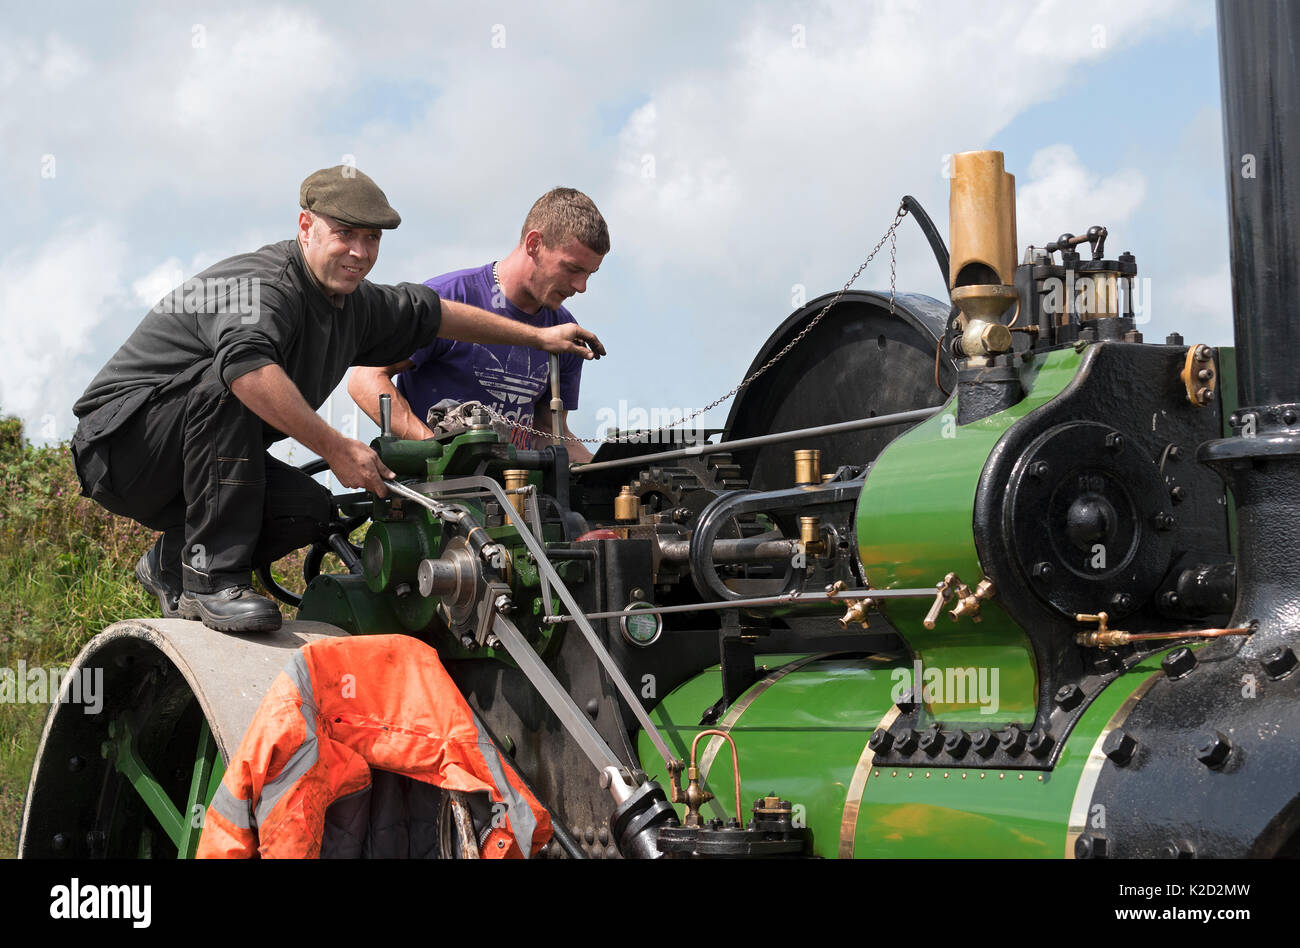 engineers working on a steam engine at vintage rally - Stock Image